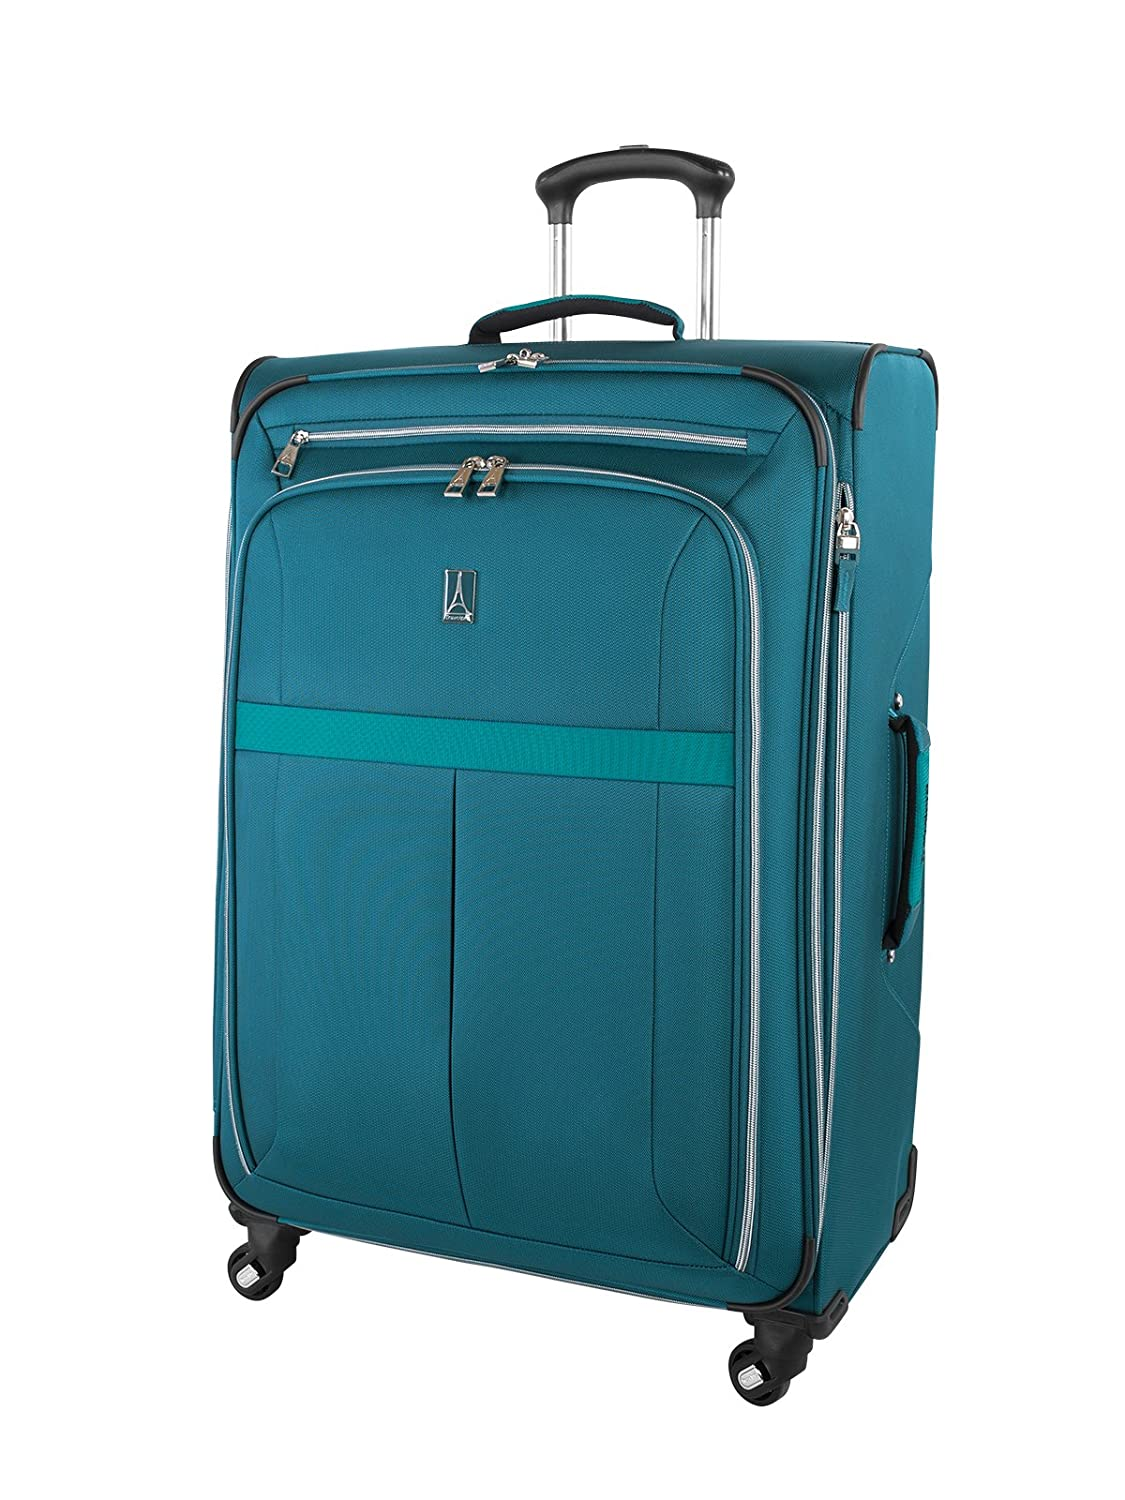 Travelpro AeroGlide Elite International Spinner Carry-on Luggage 21.5-Inch., Teal Holiday Luggage Dropship TP17669029